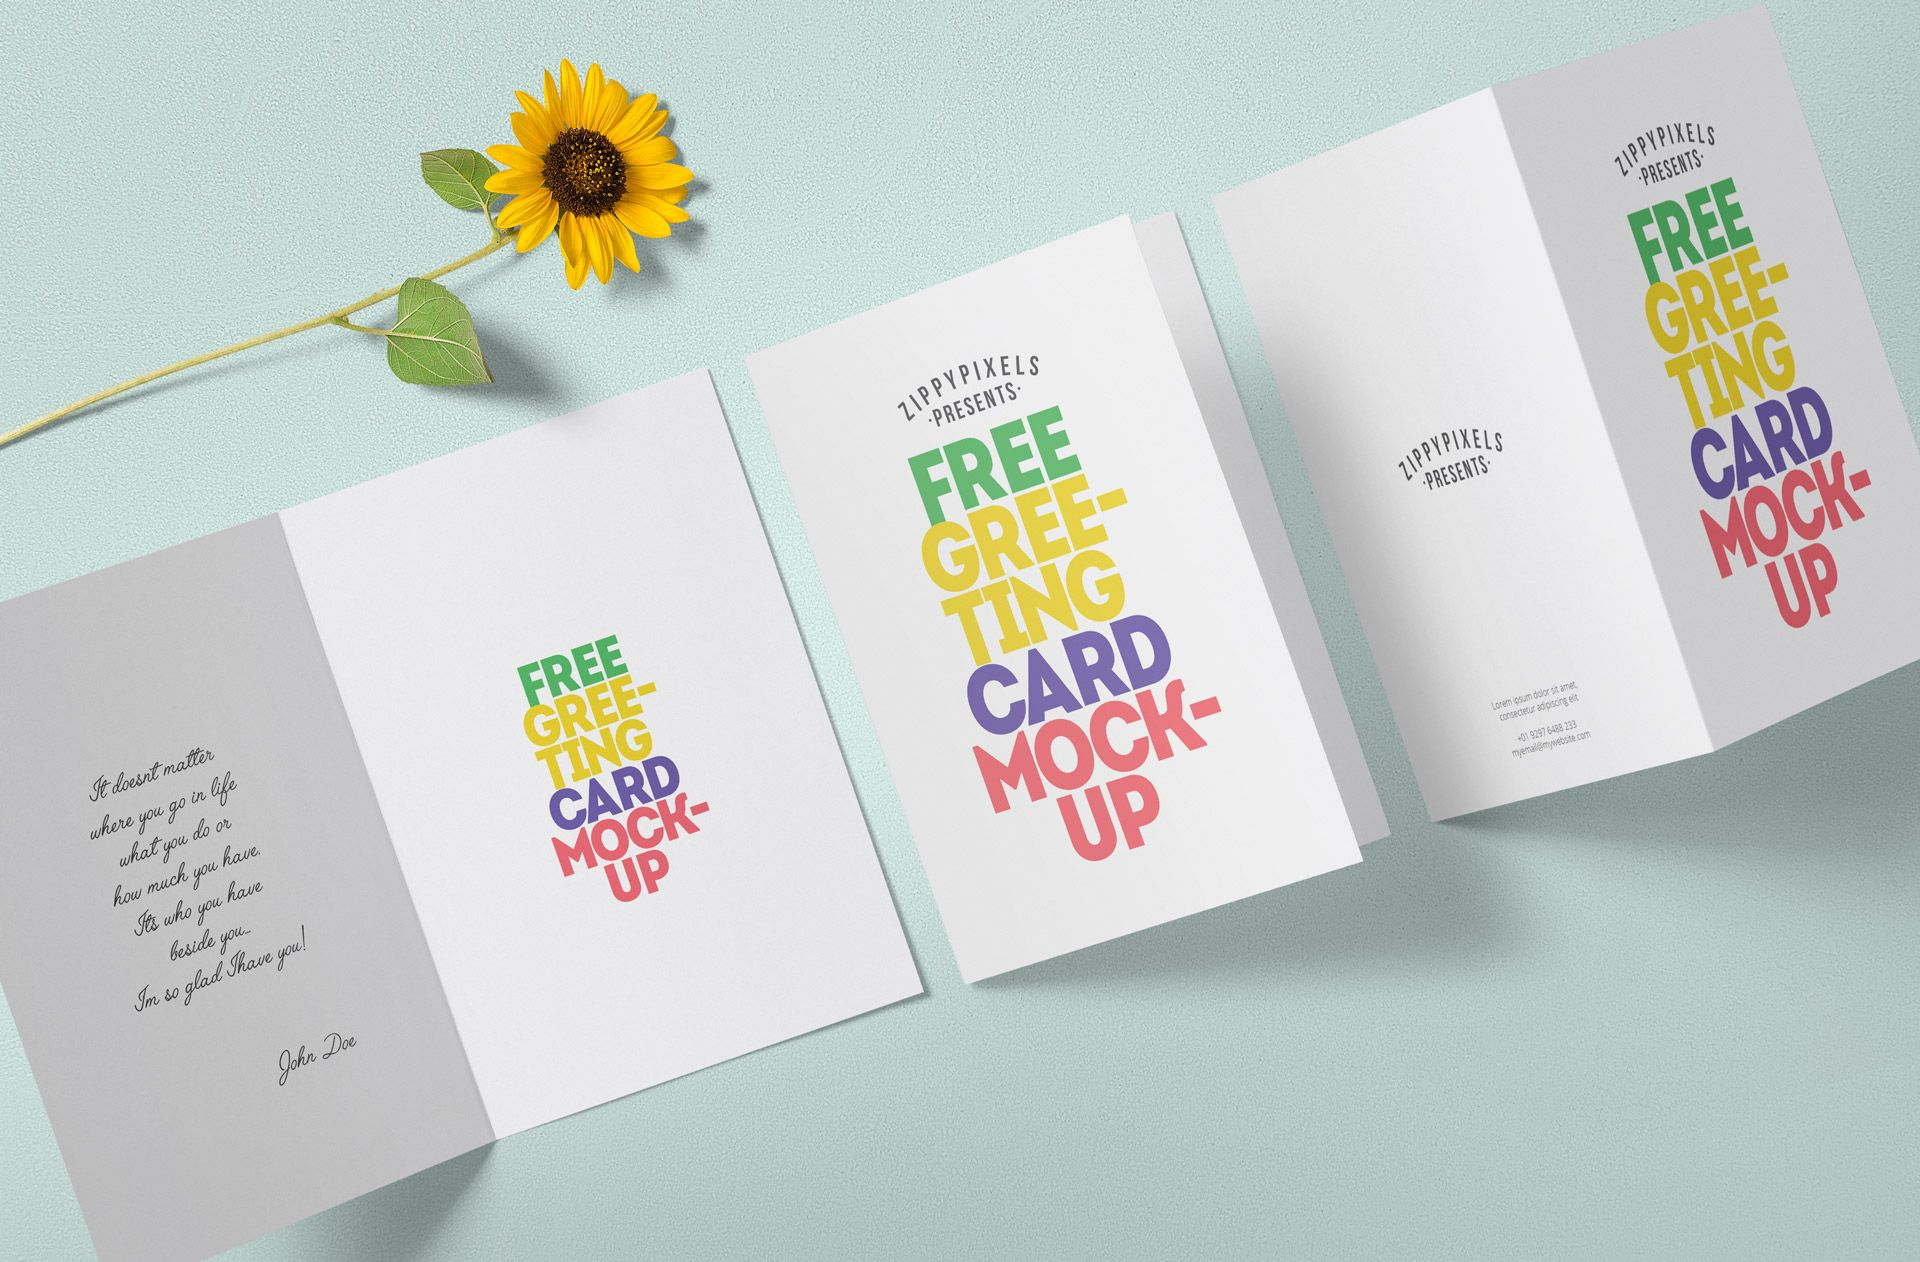 Free Greeting Card Mockup Zippypixels Free Greeting Cards Sorry Cards Card Design